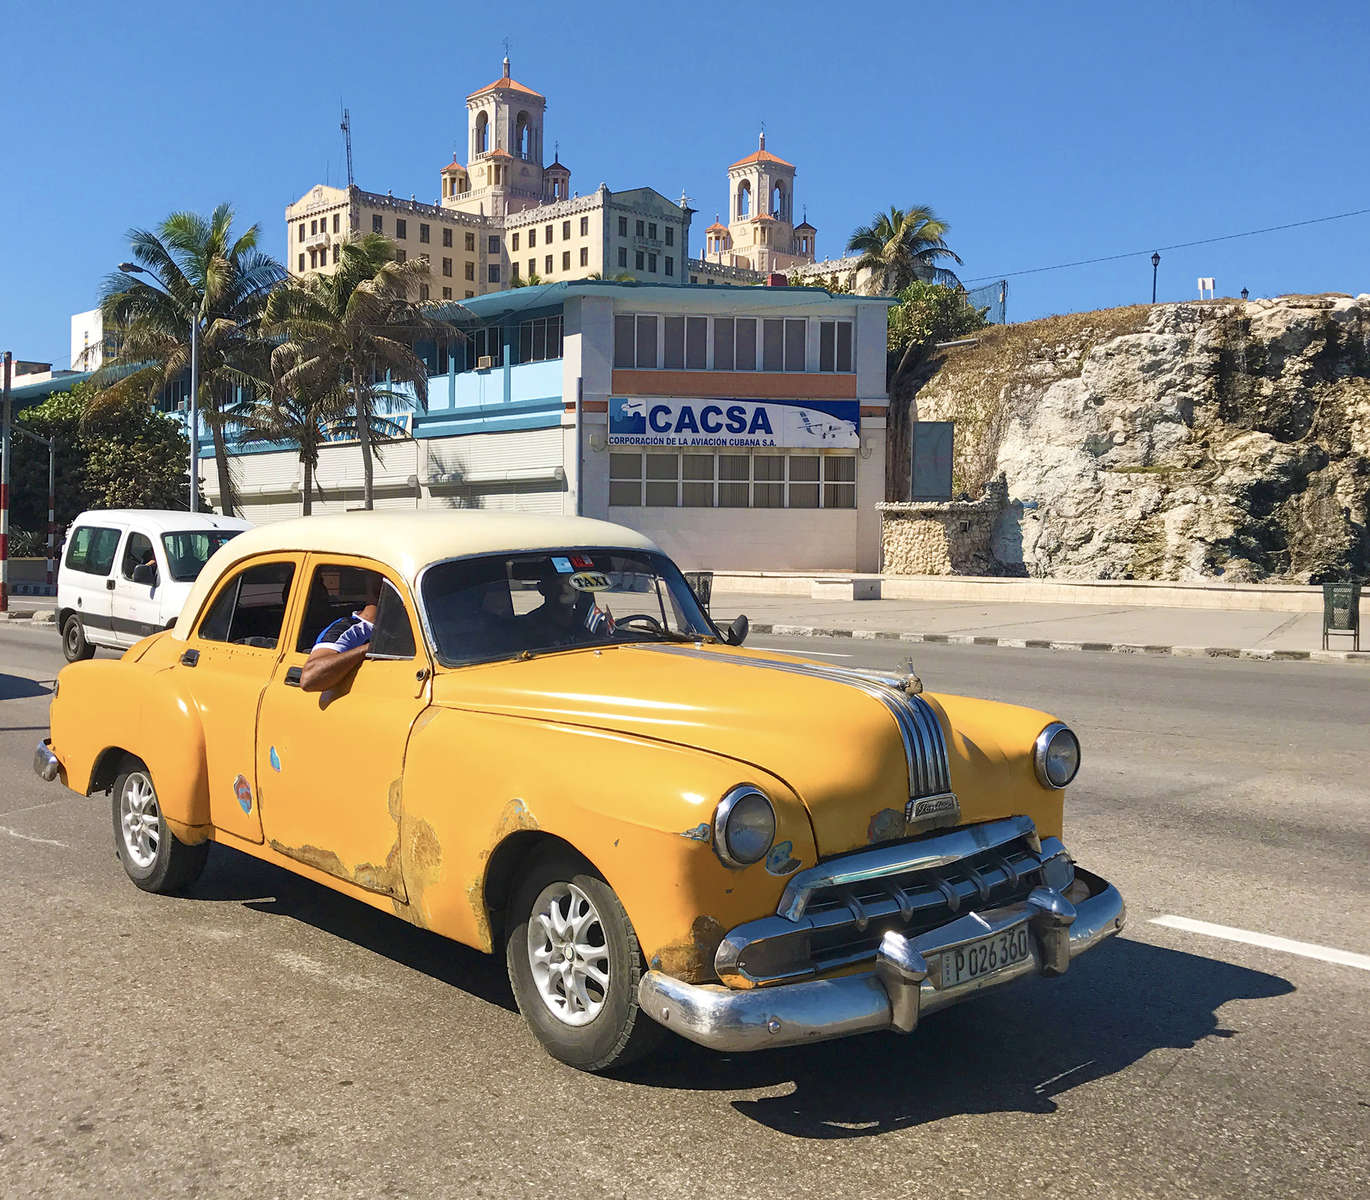 Photo of Cuban youth driving a yellow, vintage Pontiac on the Malecon Drive in Havana, Cuba.